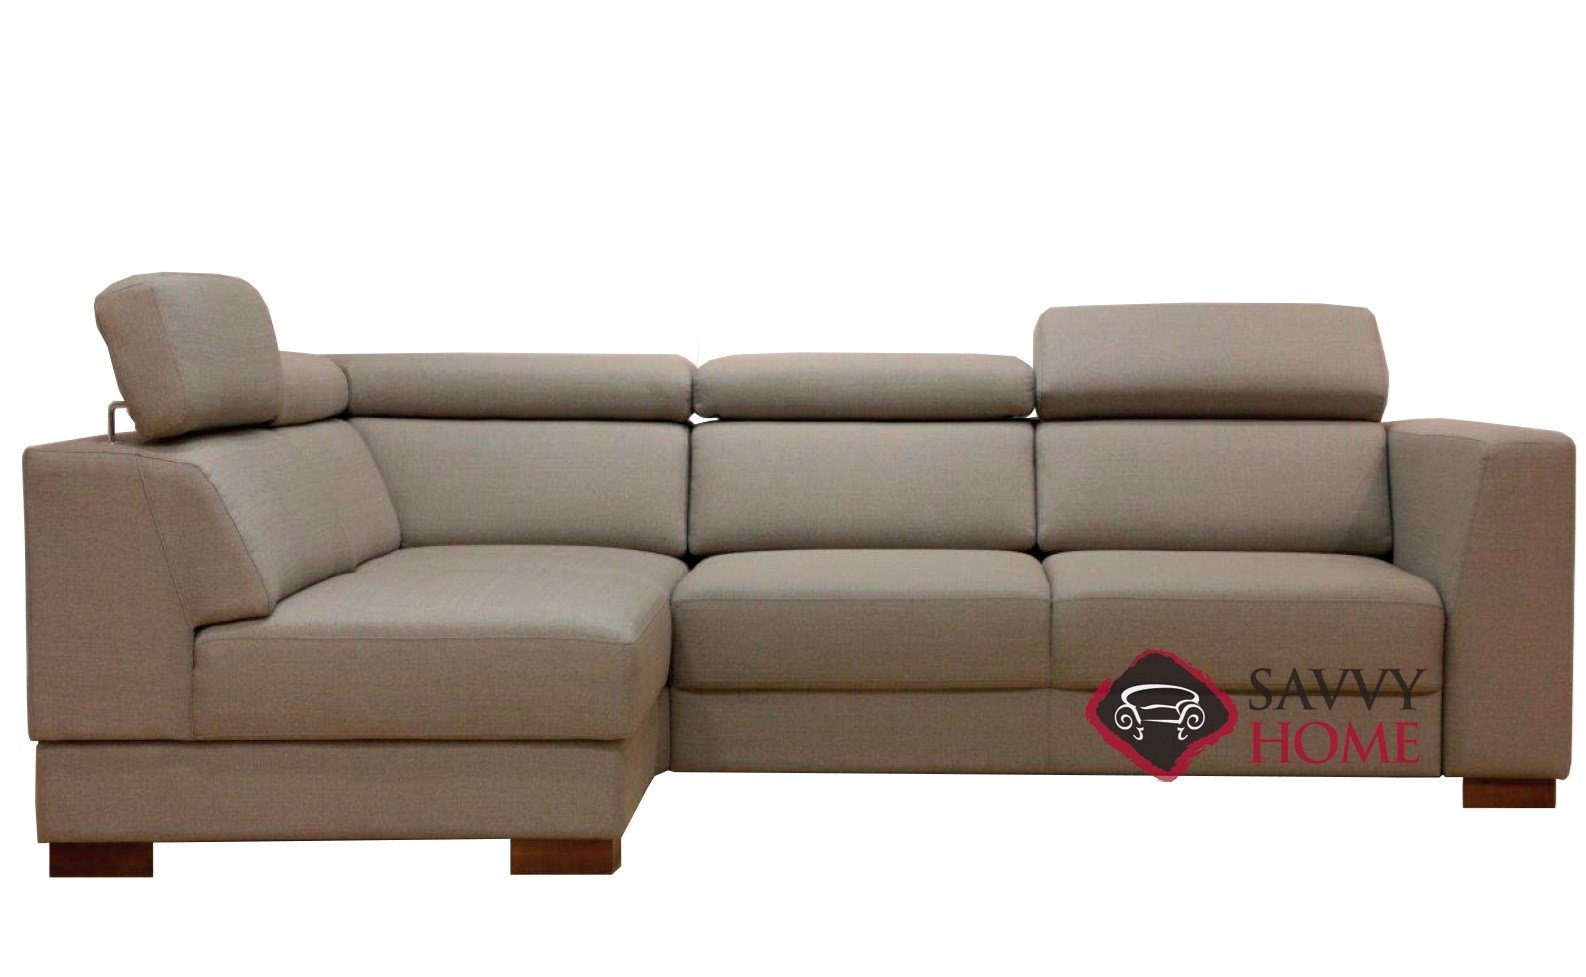 Halti Fabric Sleeper Sofas True Sectional by Luonto is Fully ...